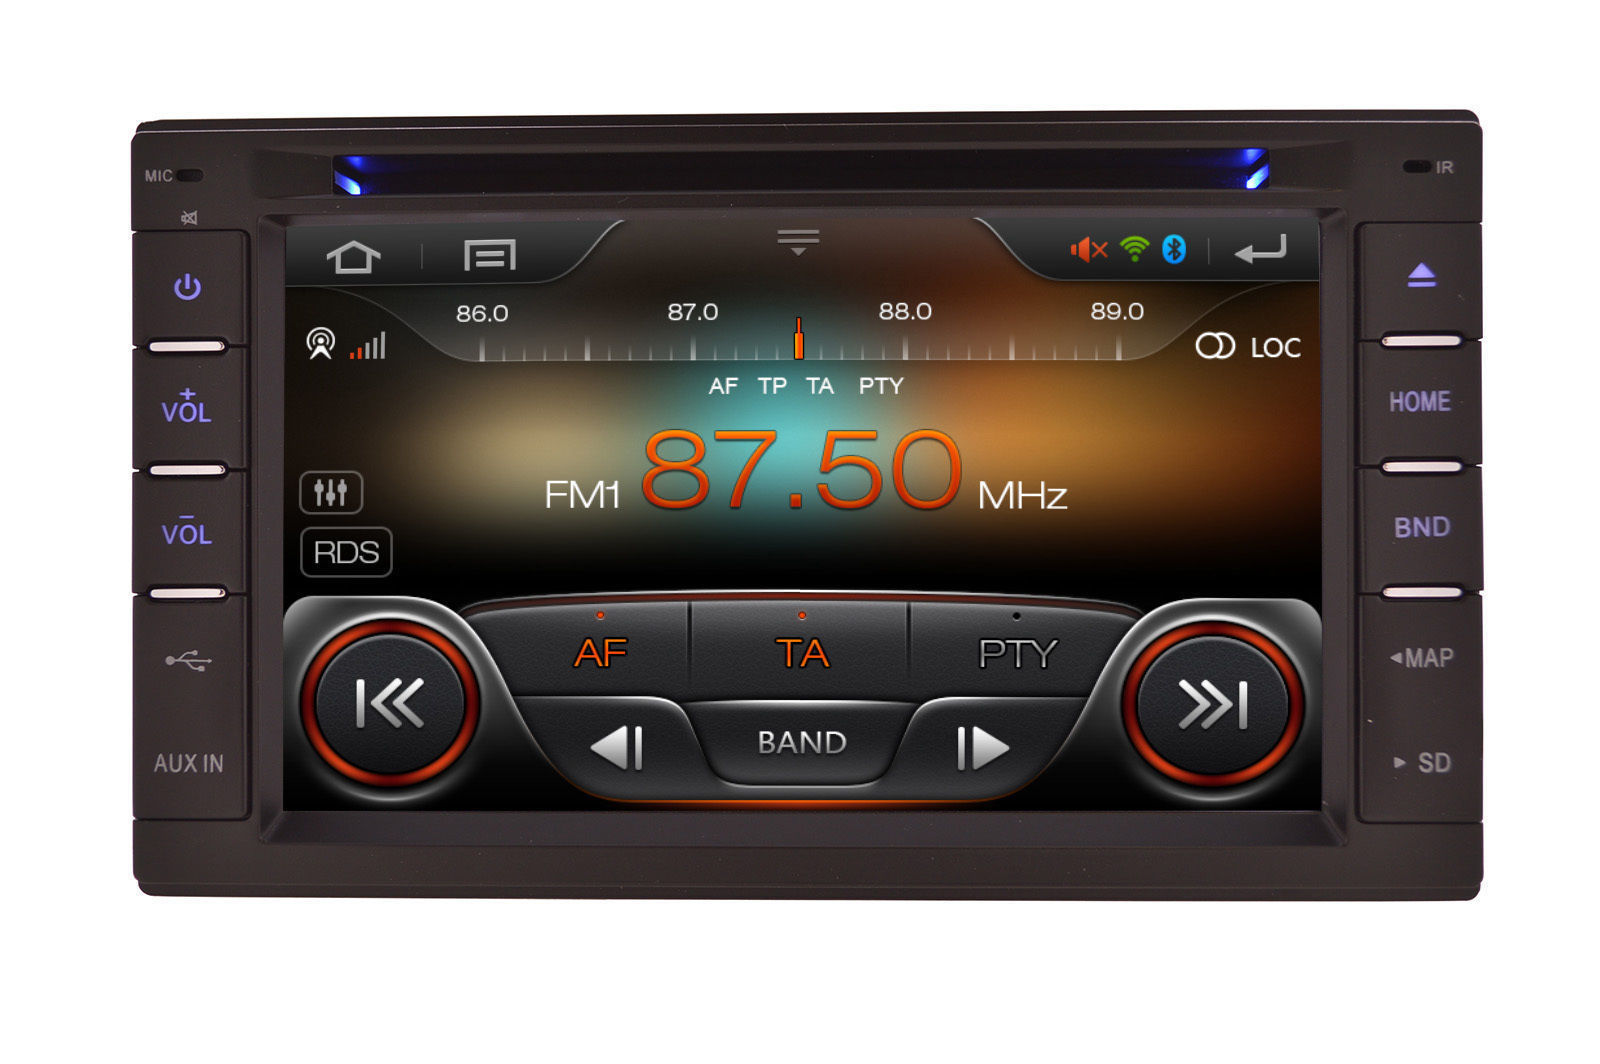 IN DASH DOUBLE DIN MULTIMEDIA NAVIGATION RADIO SYSTEM WITH BLUETOOTH GPS CD DVD image 5